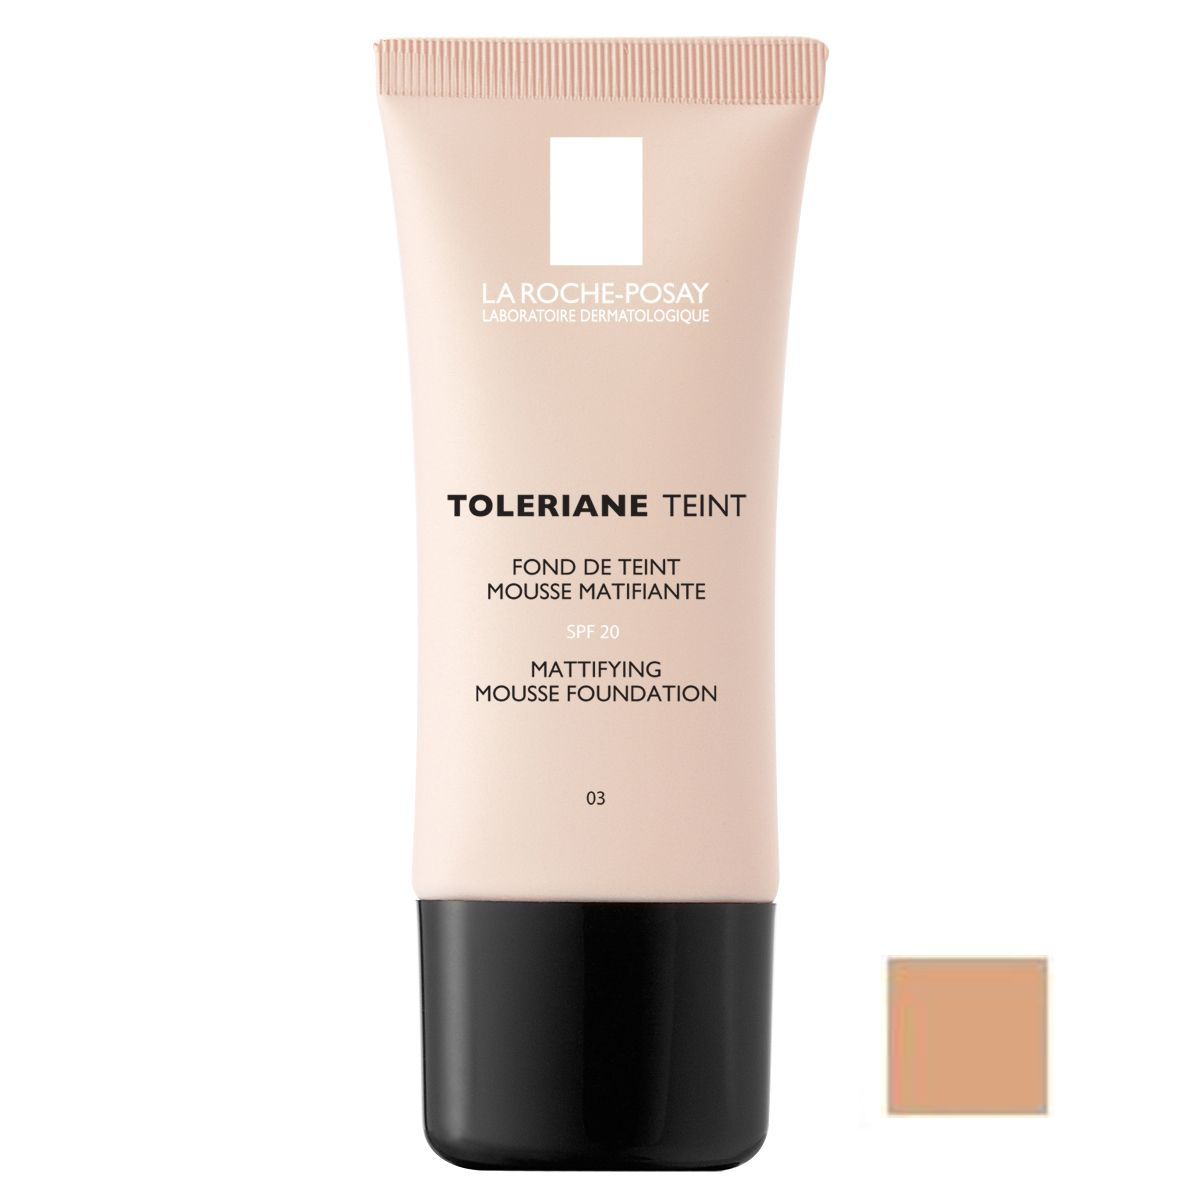 review la roche posay toleriane teint mattifying mousse foundation septembriejoi. Black Bedroom Furniture Sets. Home Design Ideas